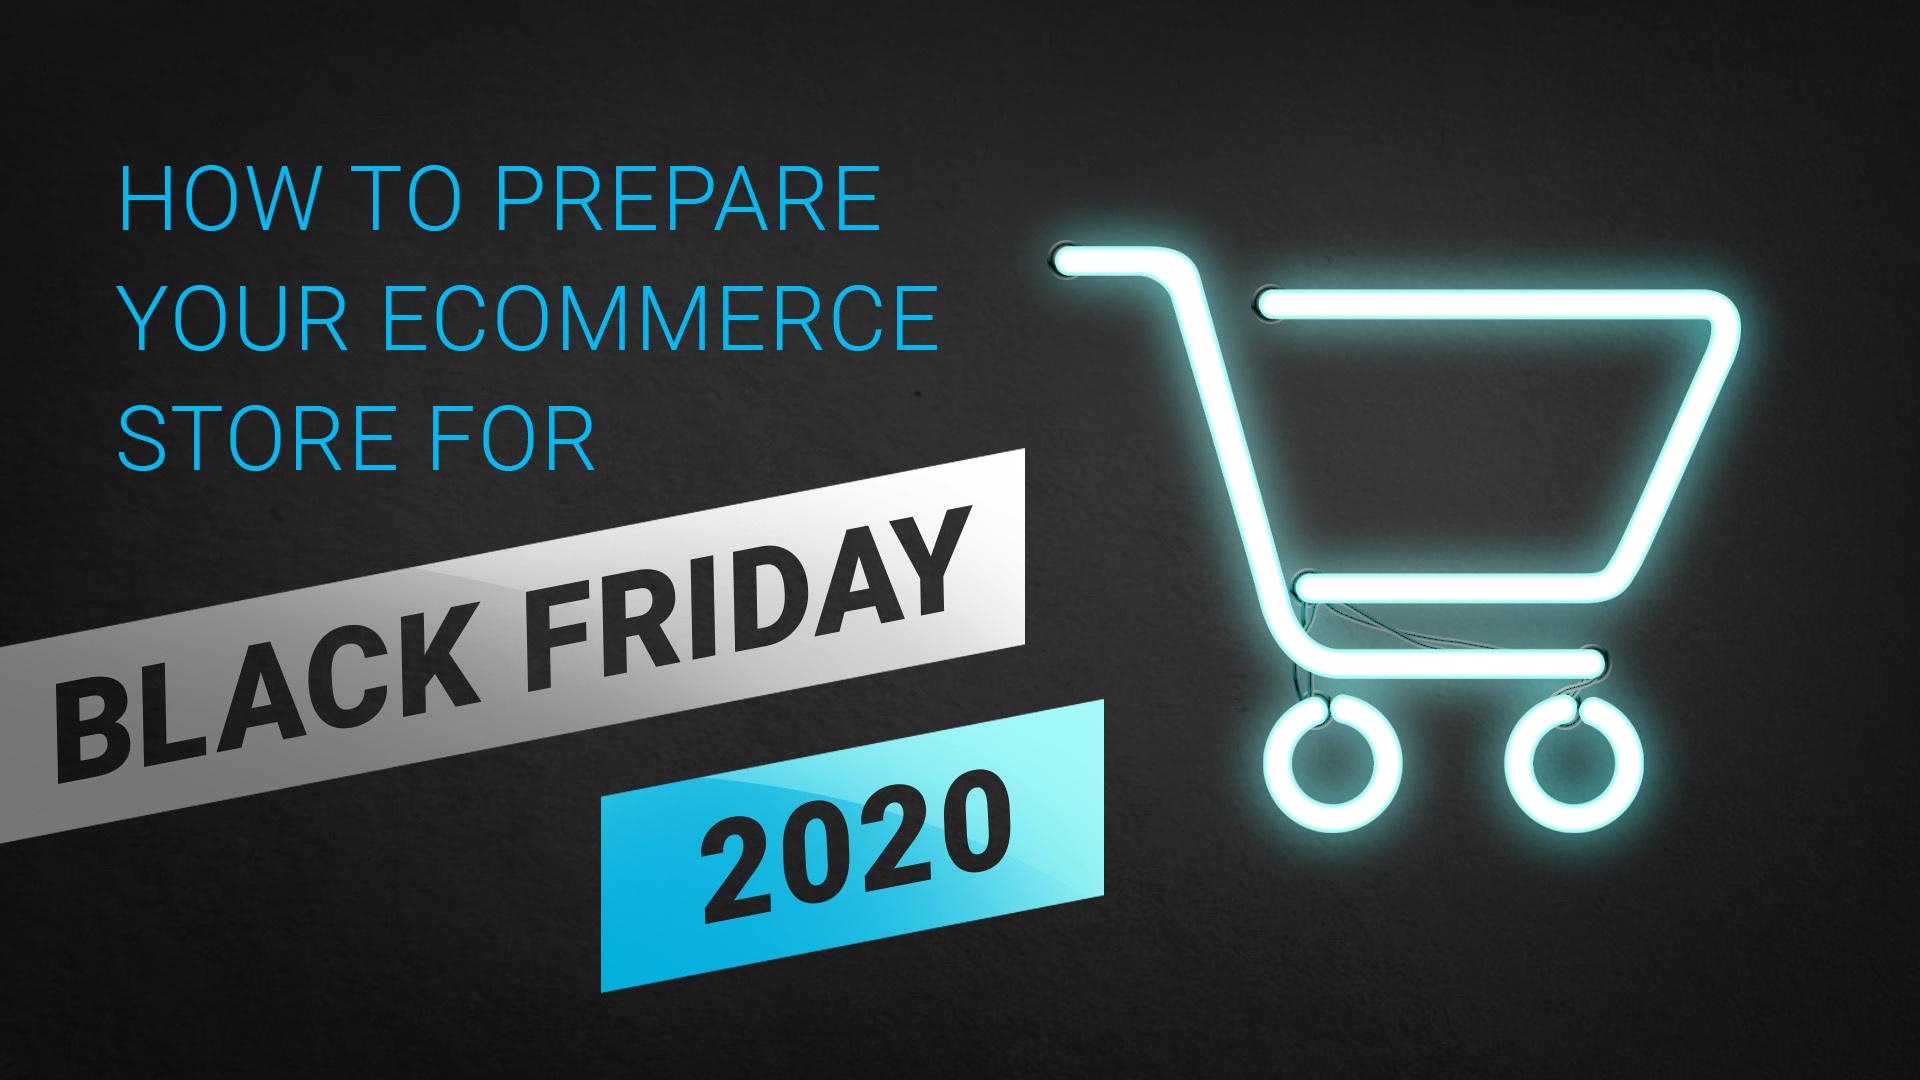 How to Prepare Your Ecommerce Store for Black Friday 2020